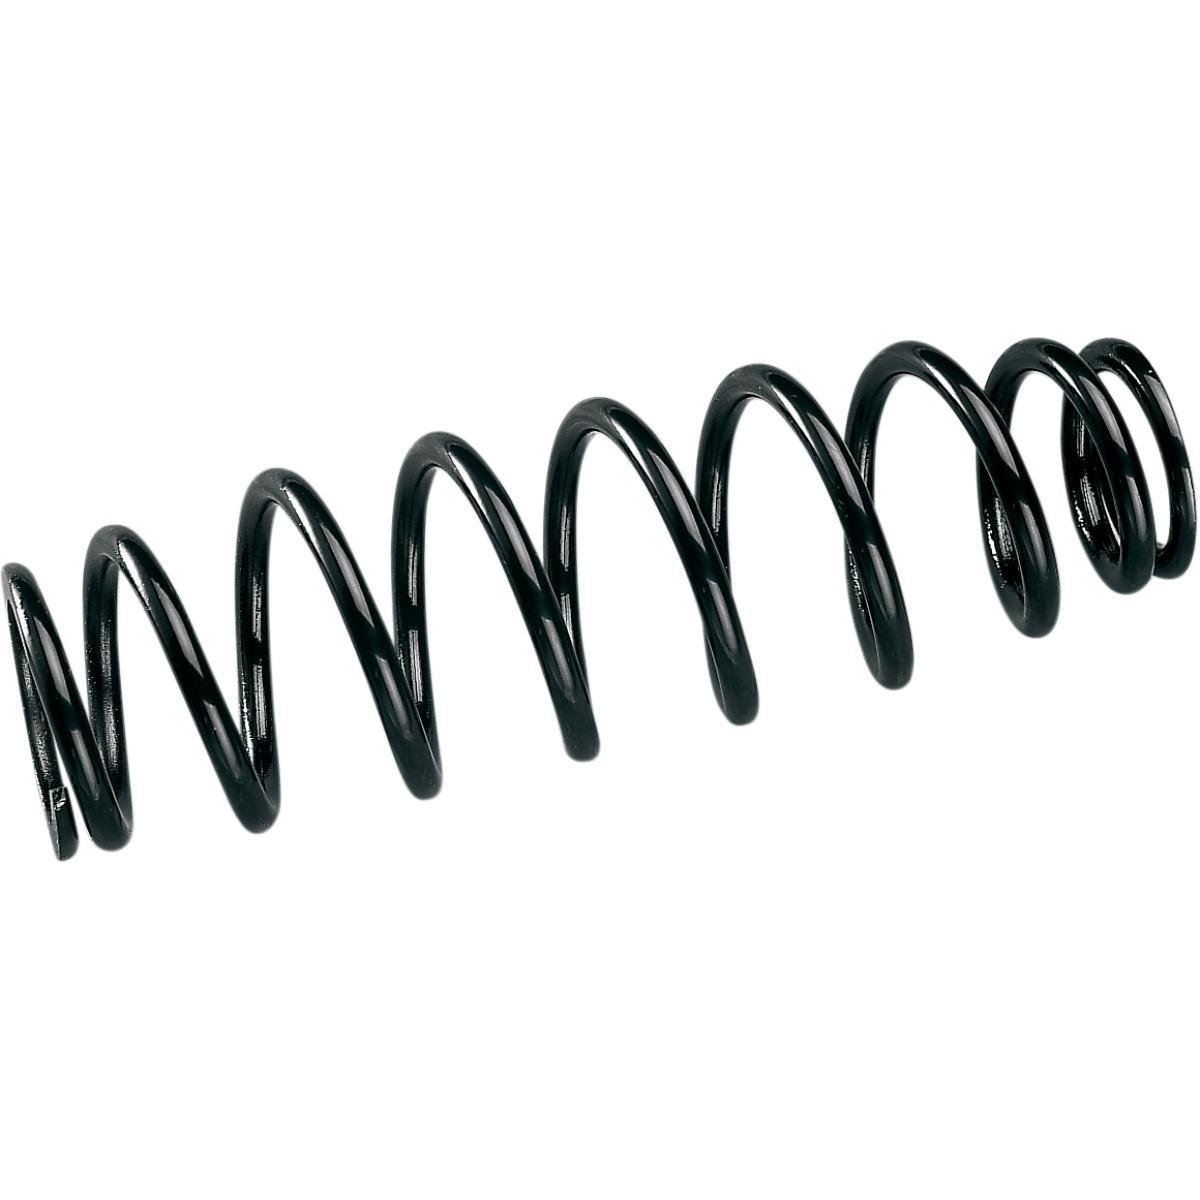 EPI Heavy Duty Suspension Spring - Black WE325112 1312-0412